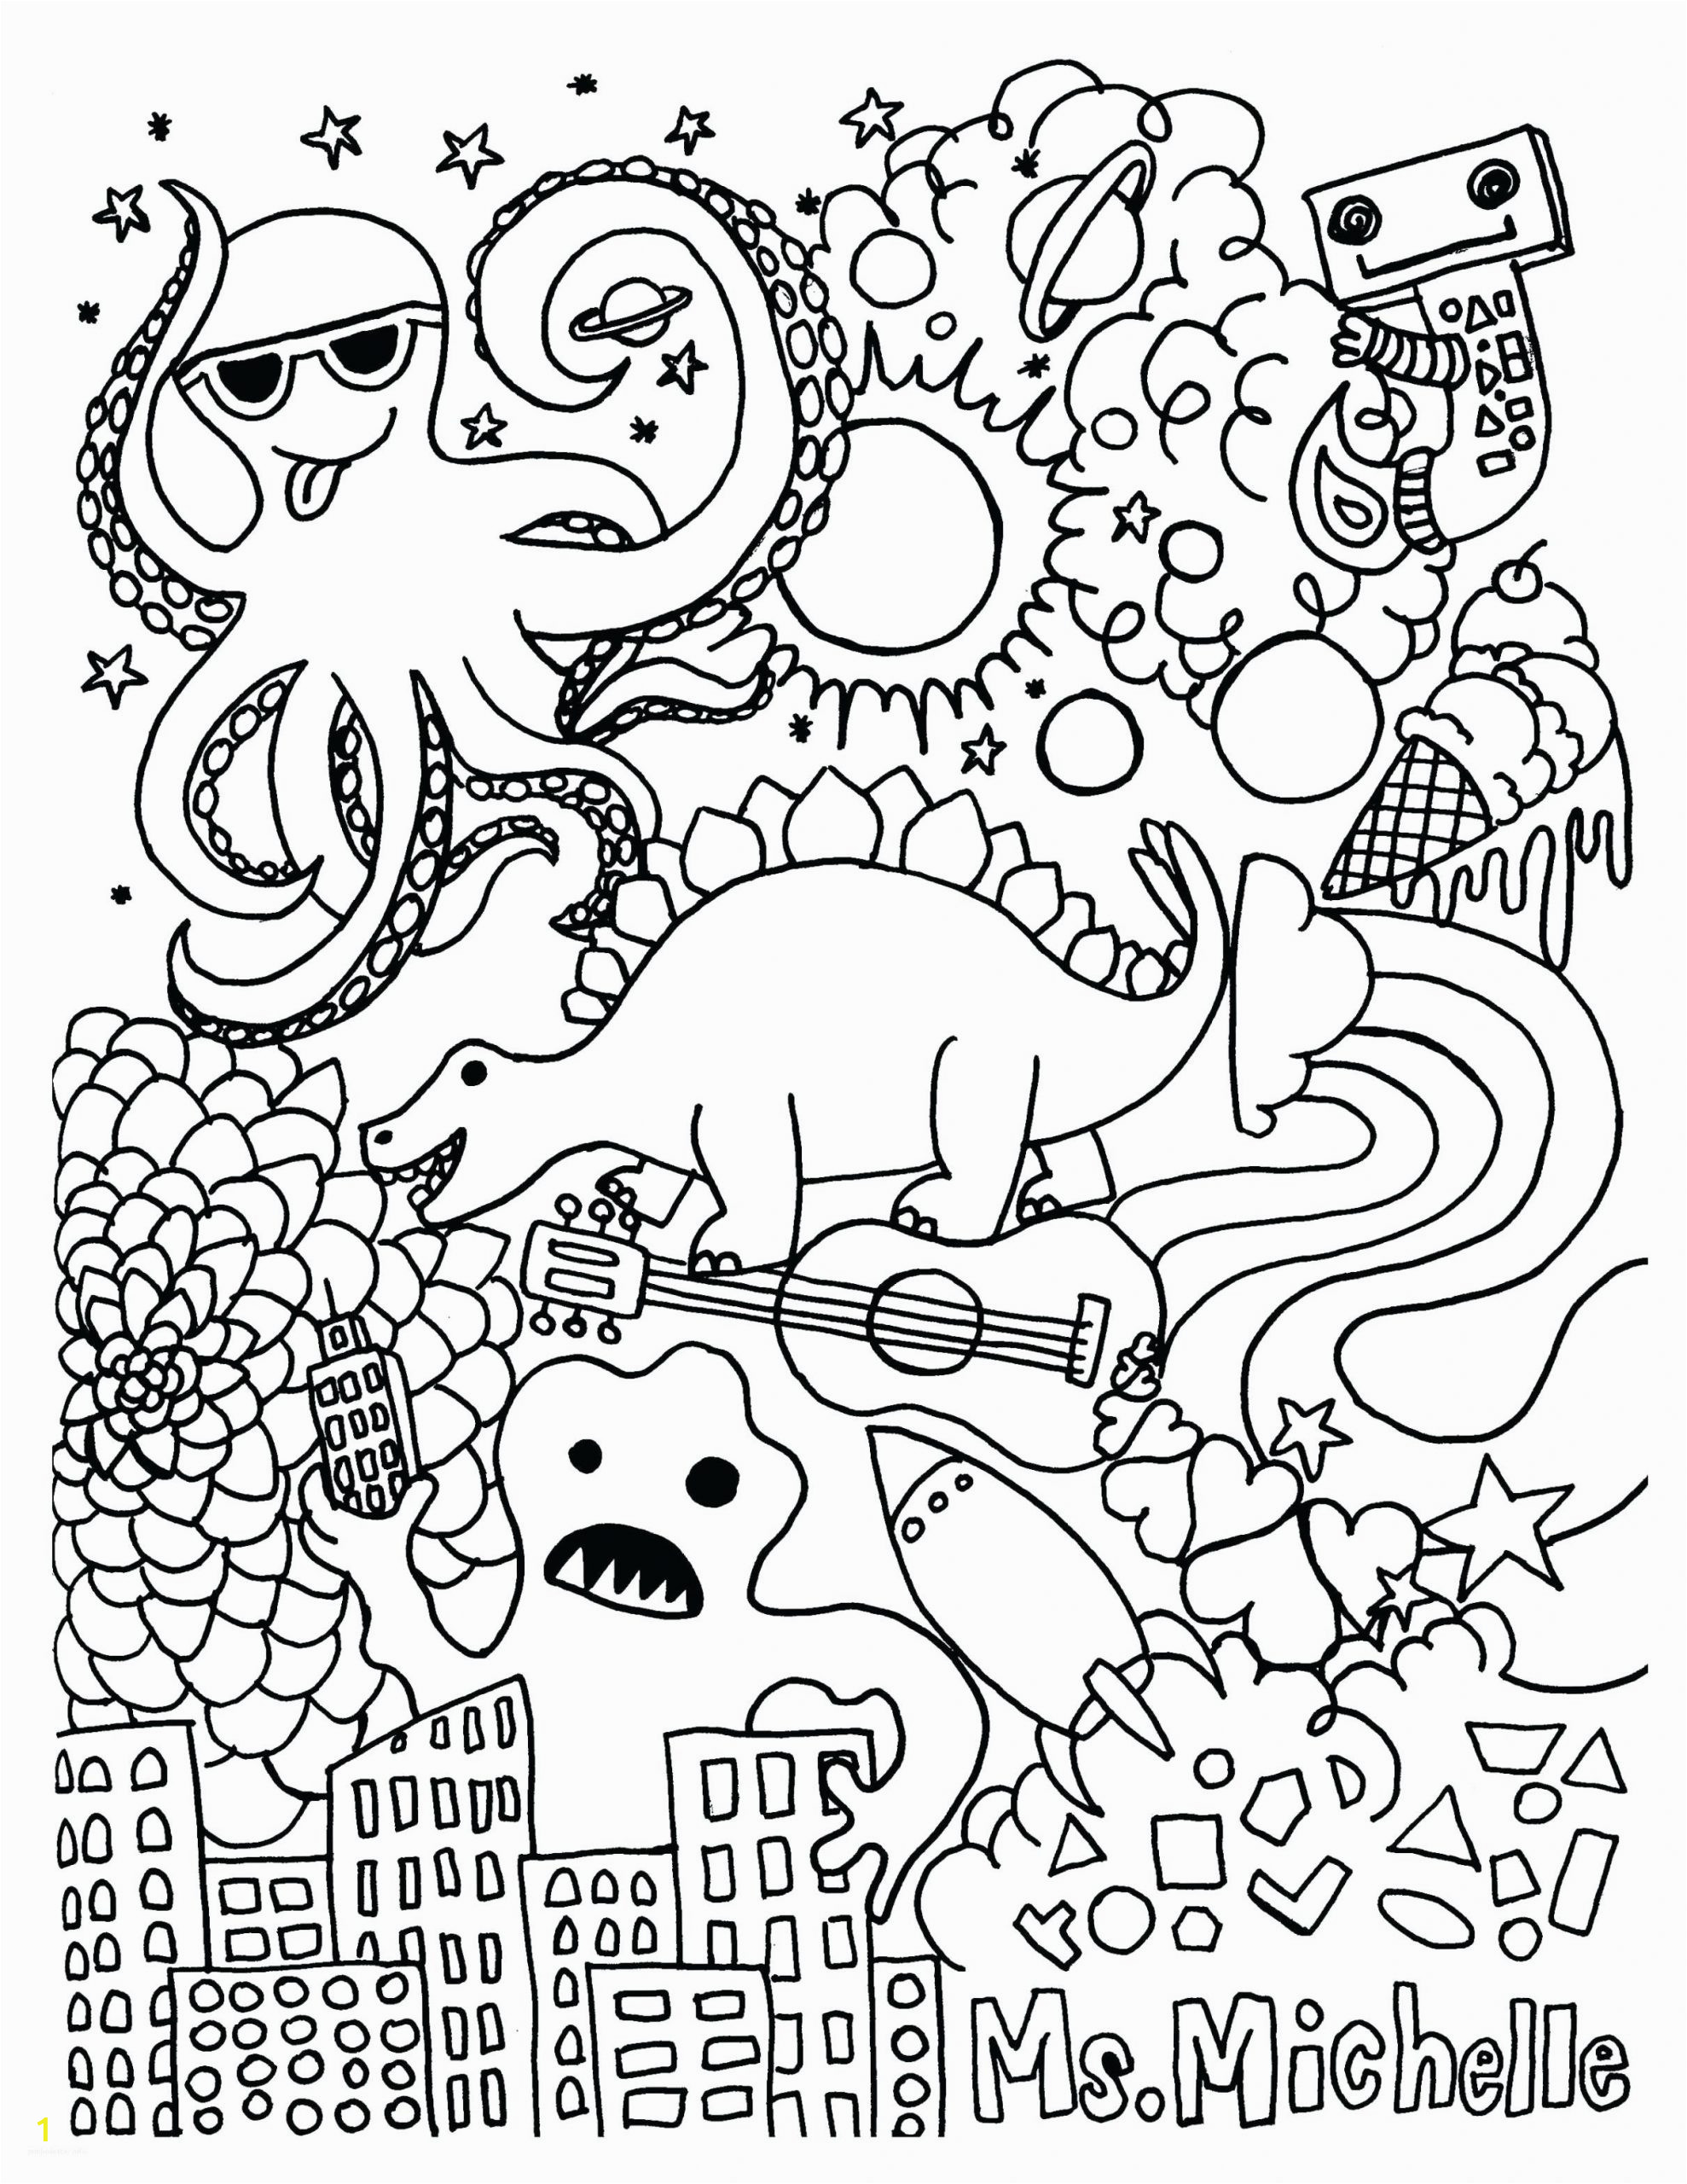 staggering math coloring pages free multiplication sheets for 5th grade redhatsheet co printable worksheets best scaled